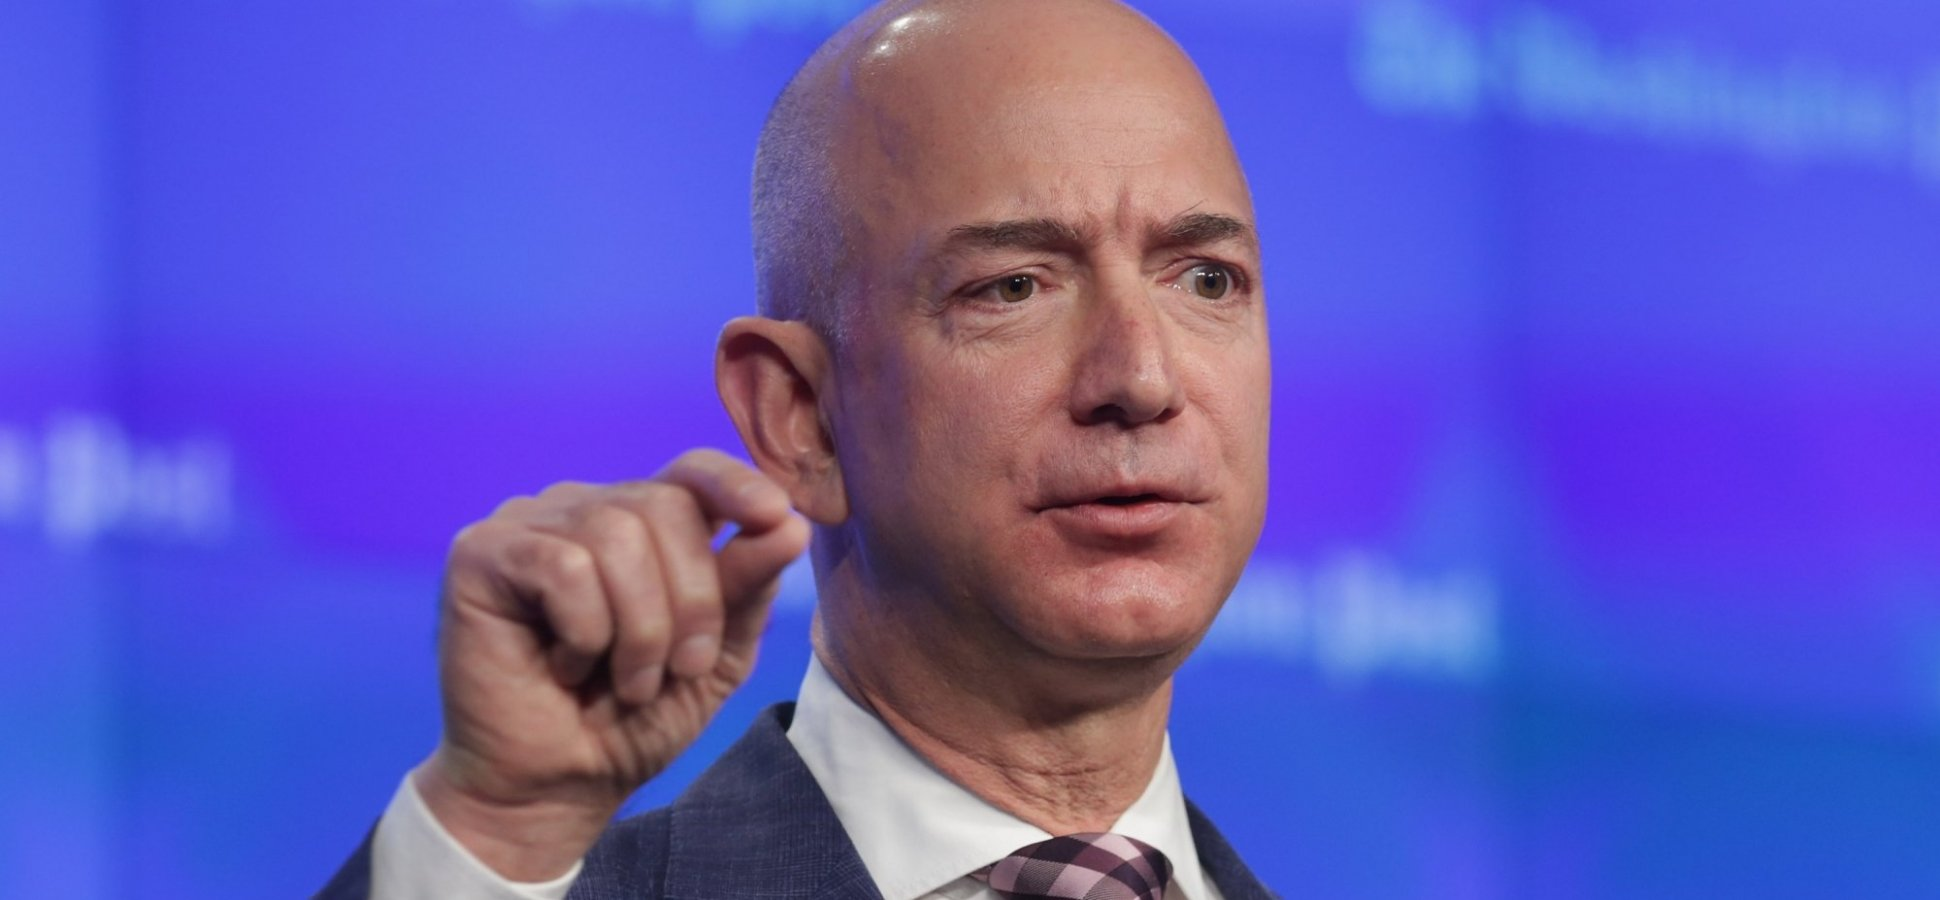 20 Years Ago Jeff Bezos Said To Always Ask These 3 Questions To